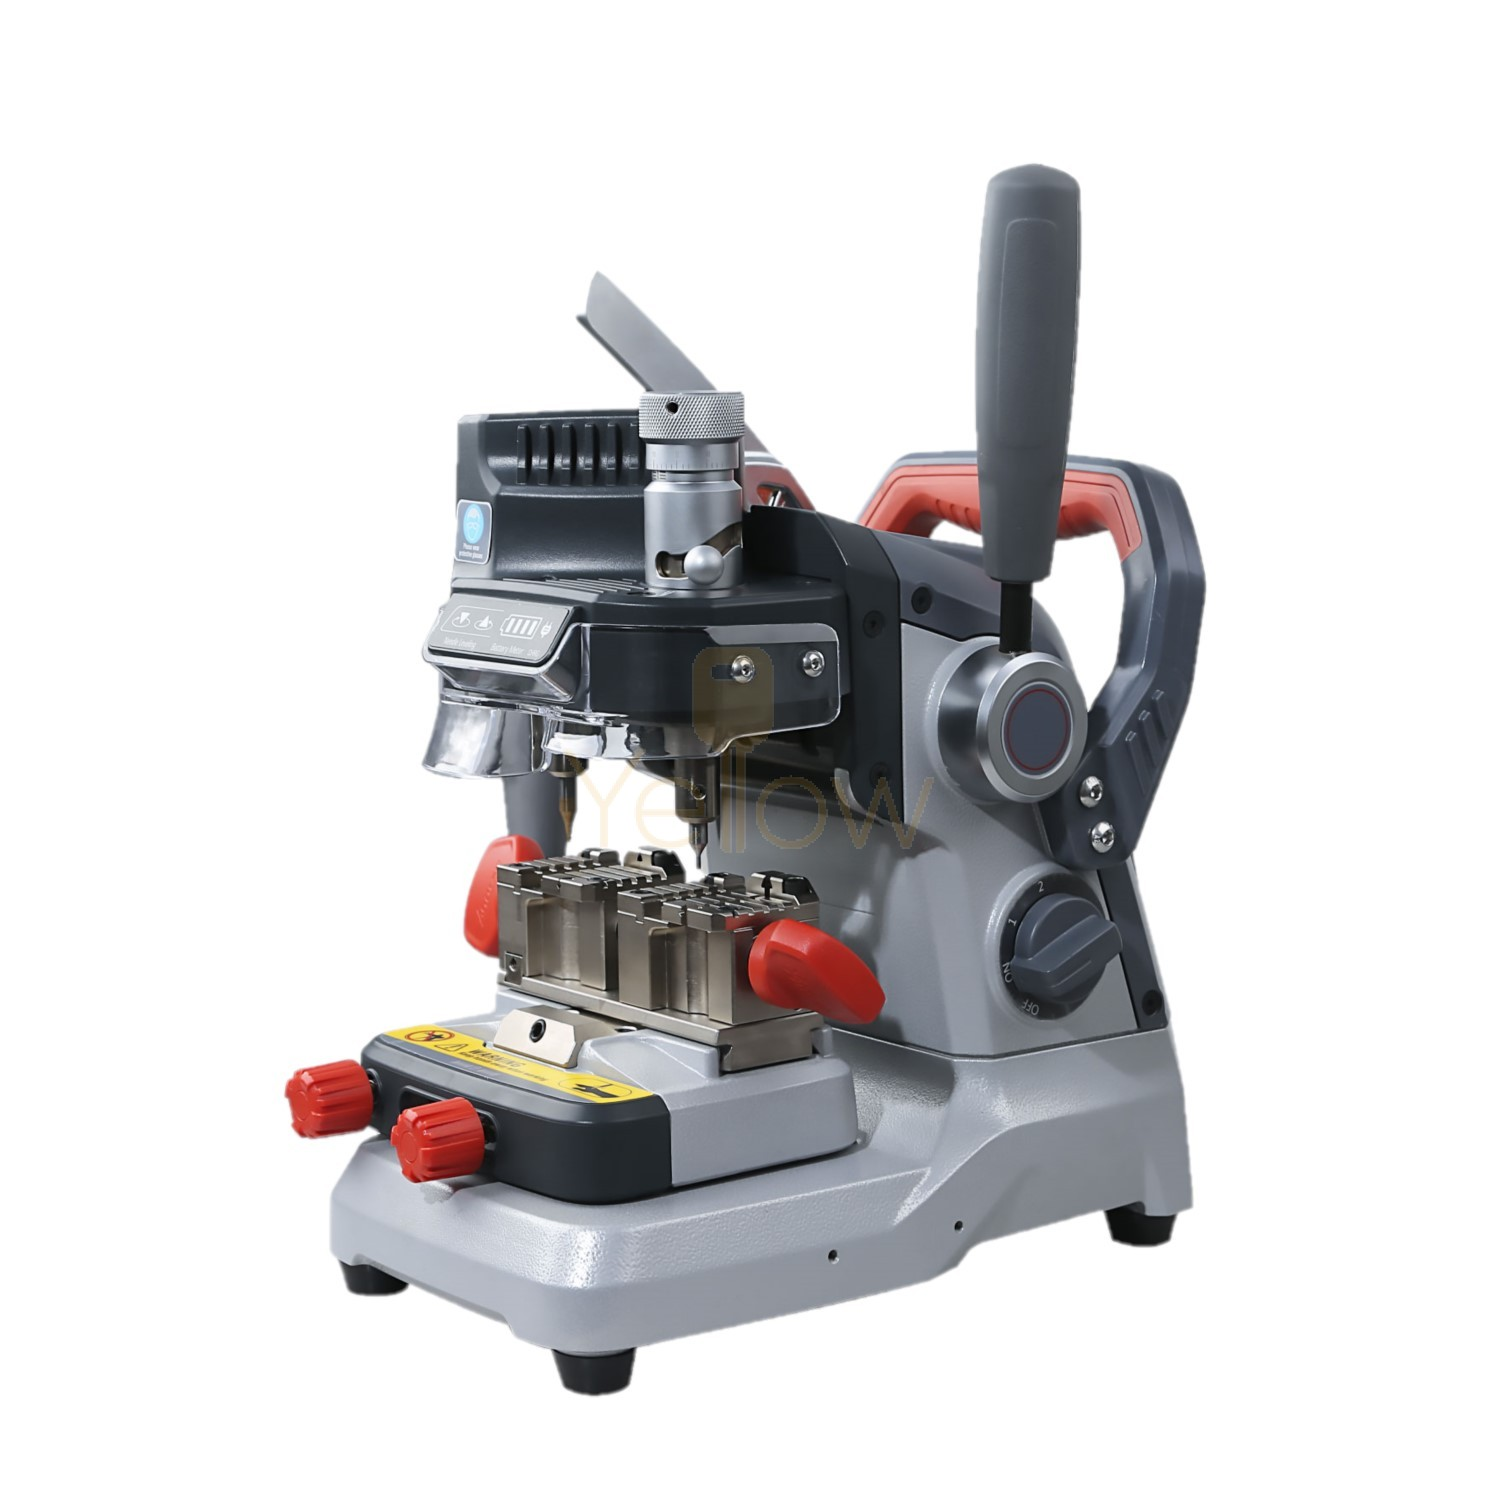 XHORSE - CONDOR DOLPHIN XP-007 MANUAL KEY CUTTING MACHINE